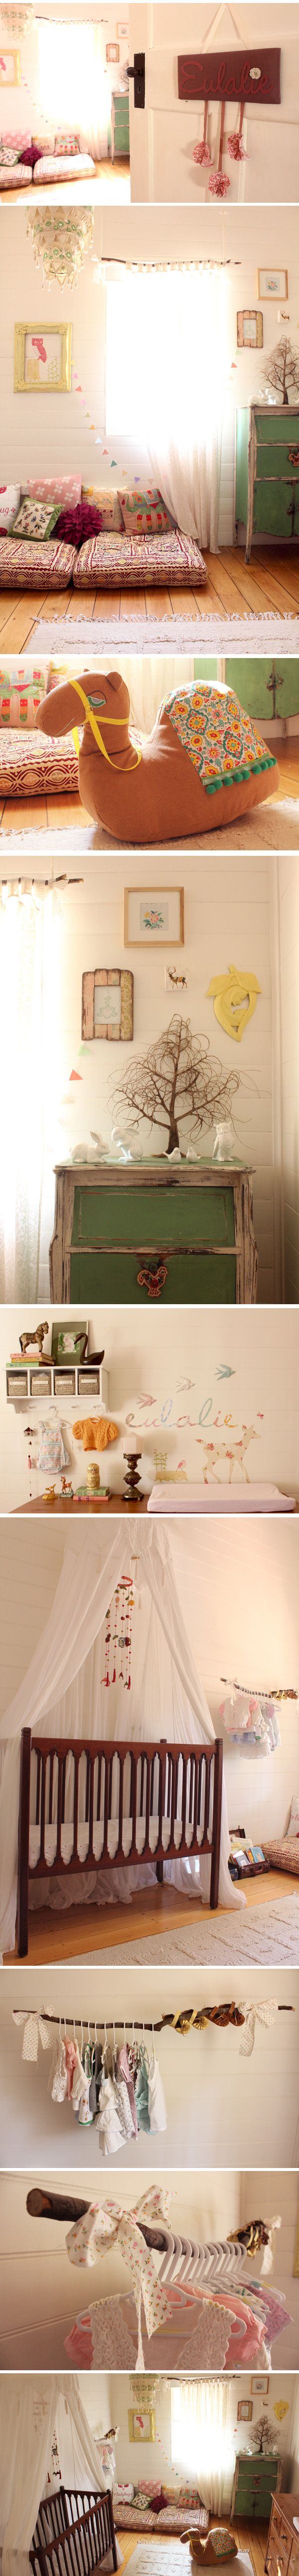 I'm obsessed with this nursery. Literally teared up when I saw these pictures!